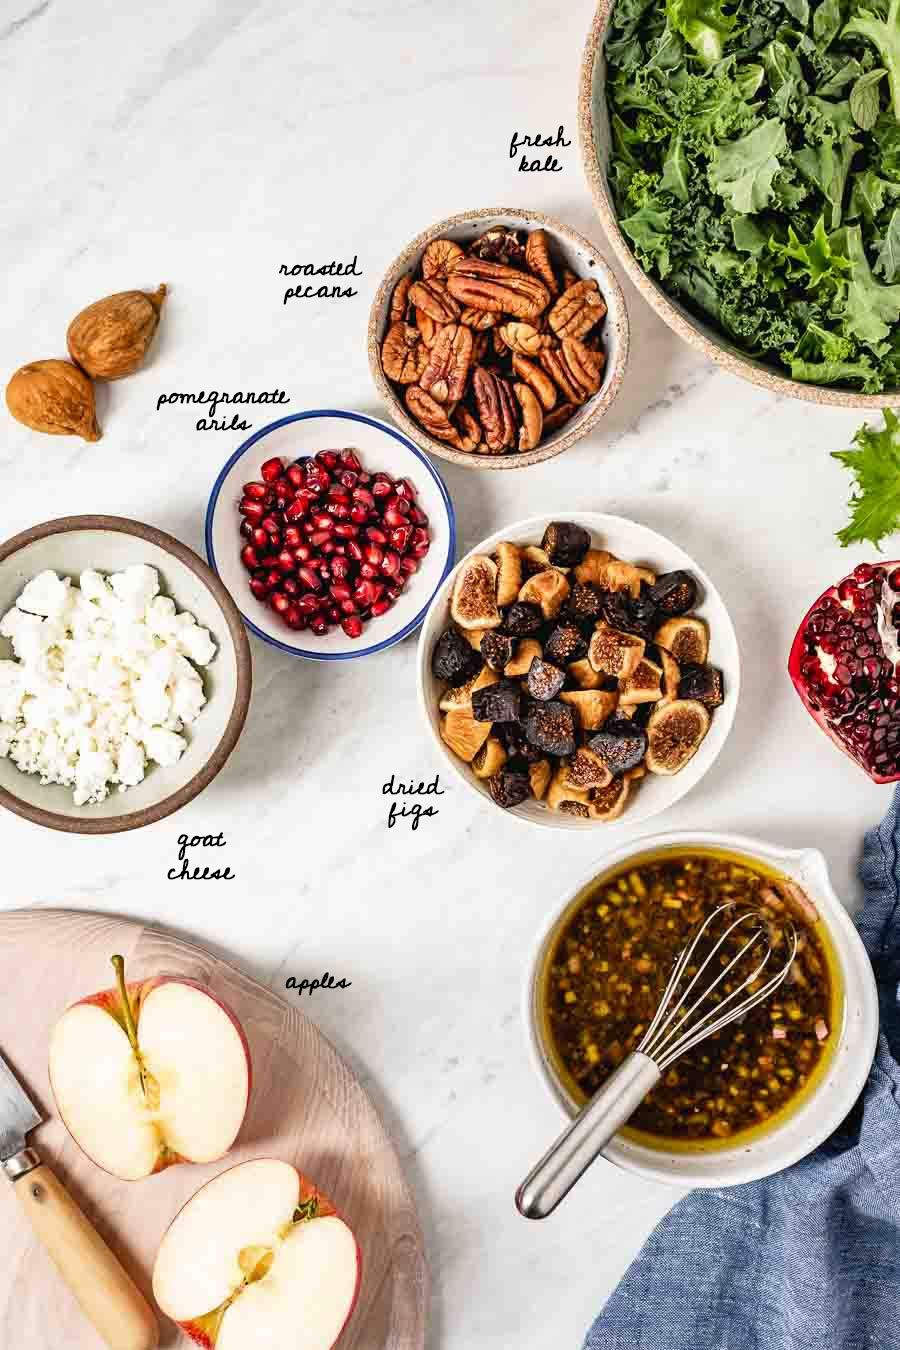 Harvest Kale Salad Ingredients: Kale, pecans. pomegranate arils, goat cheese, figs, and apples are photographed from the top view.